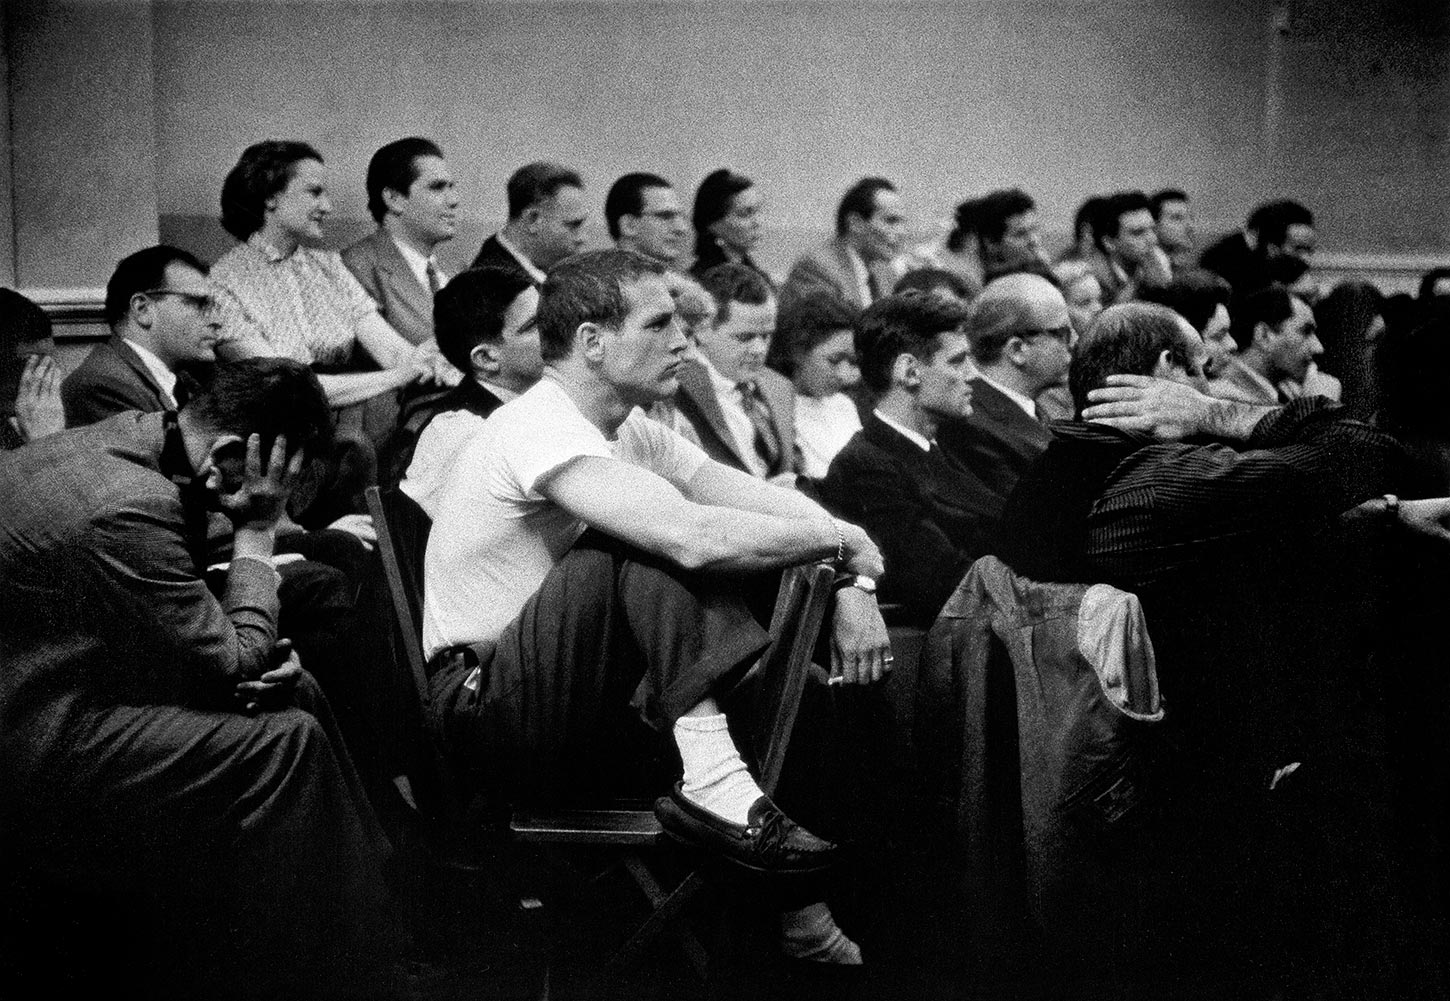 American actor Paul Newman at The Actors Studio. New York City, USA. 1955.